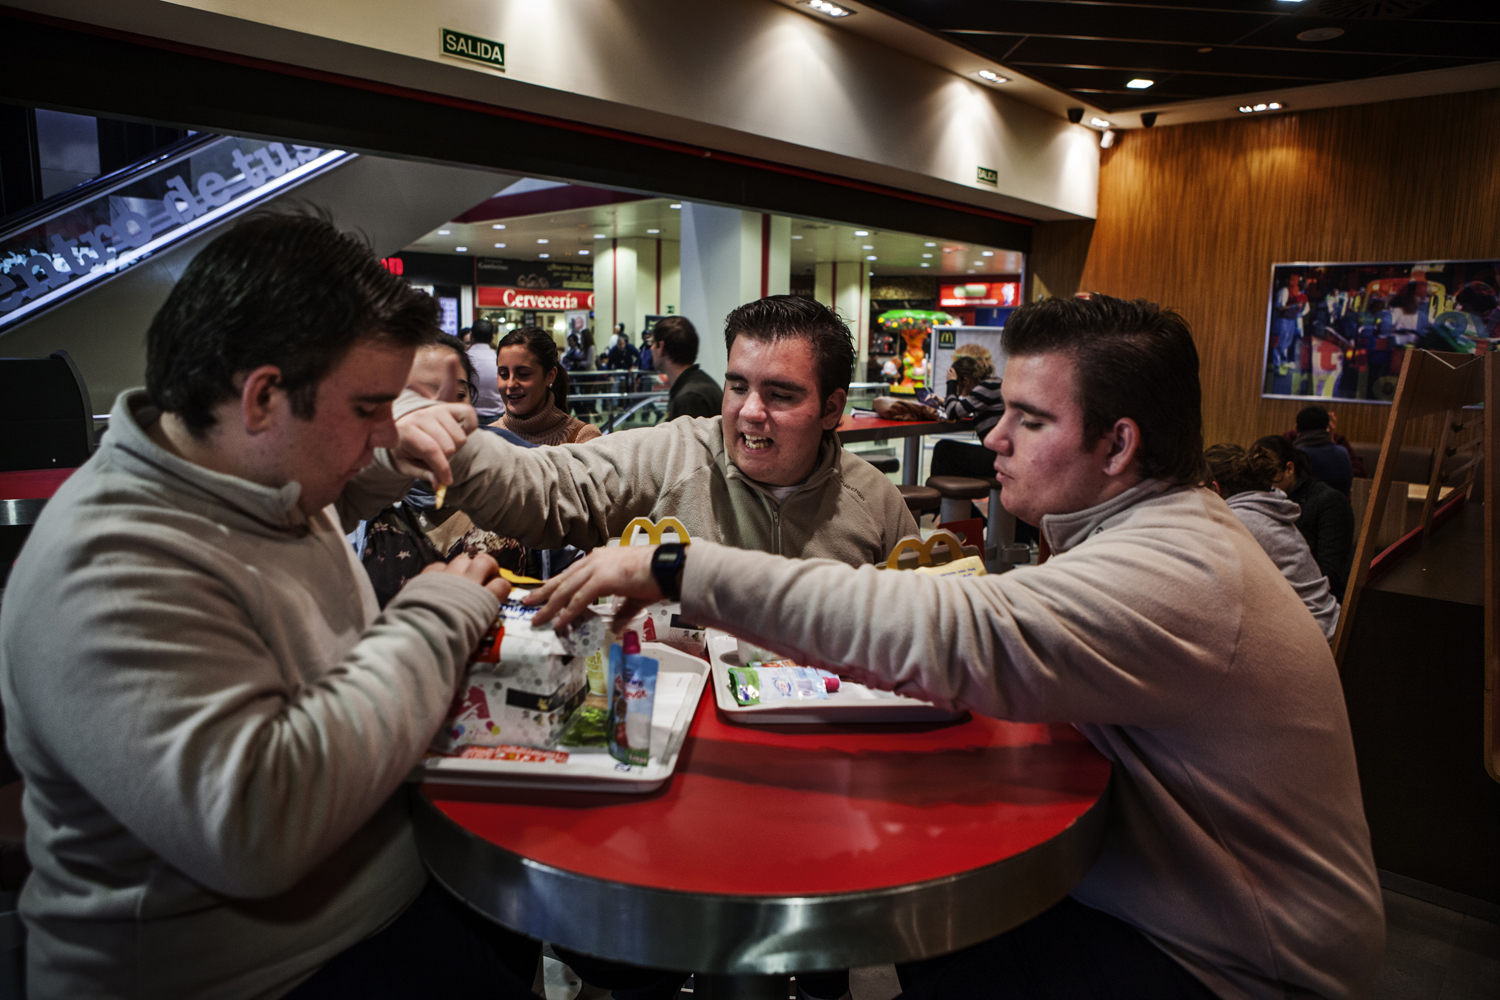 Álvaro shields himself from his brothers after taking away a french fry in a restaurant in Seville.